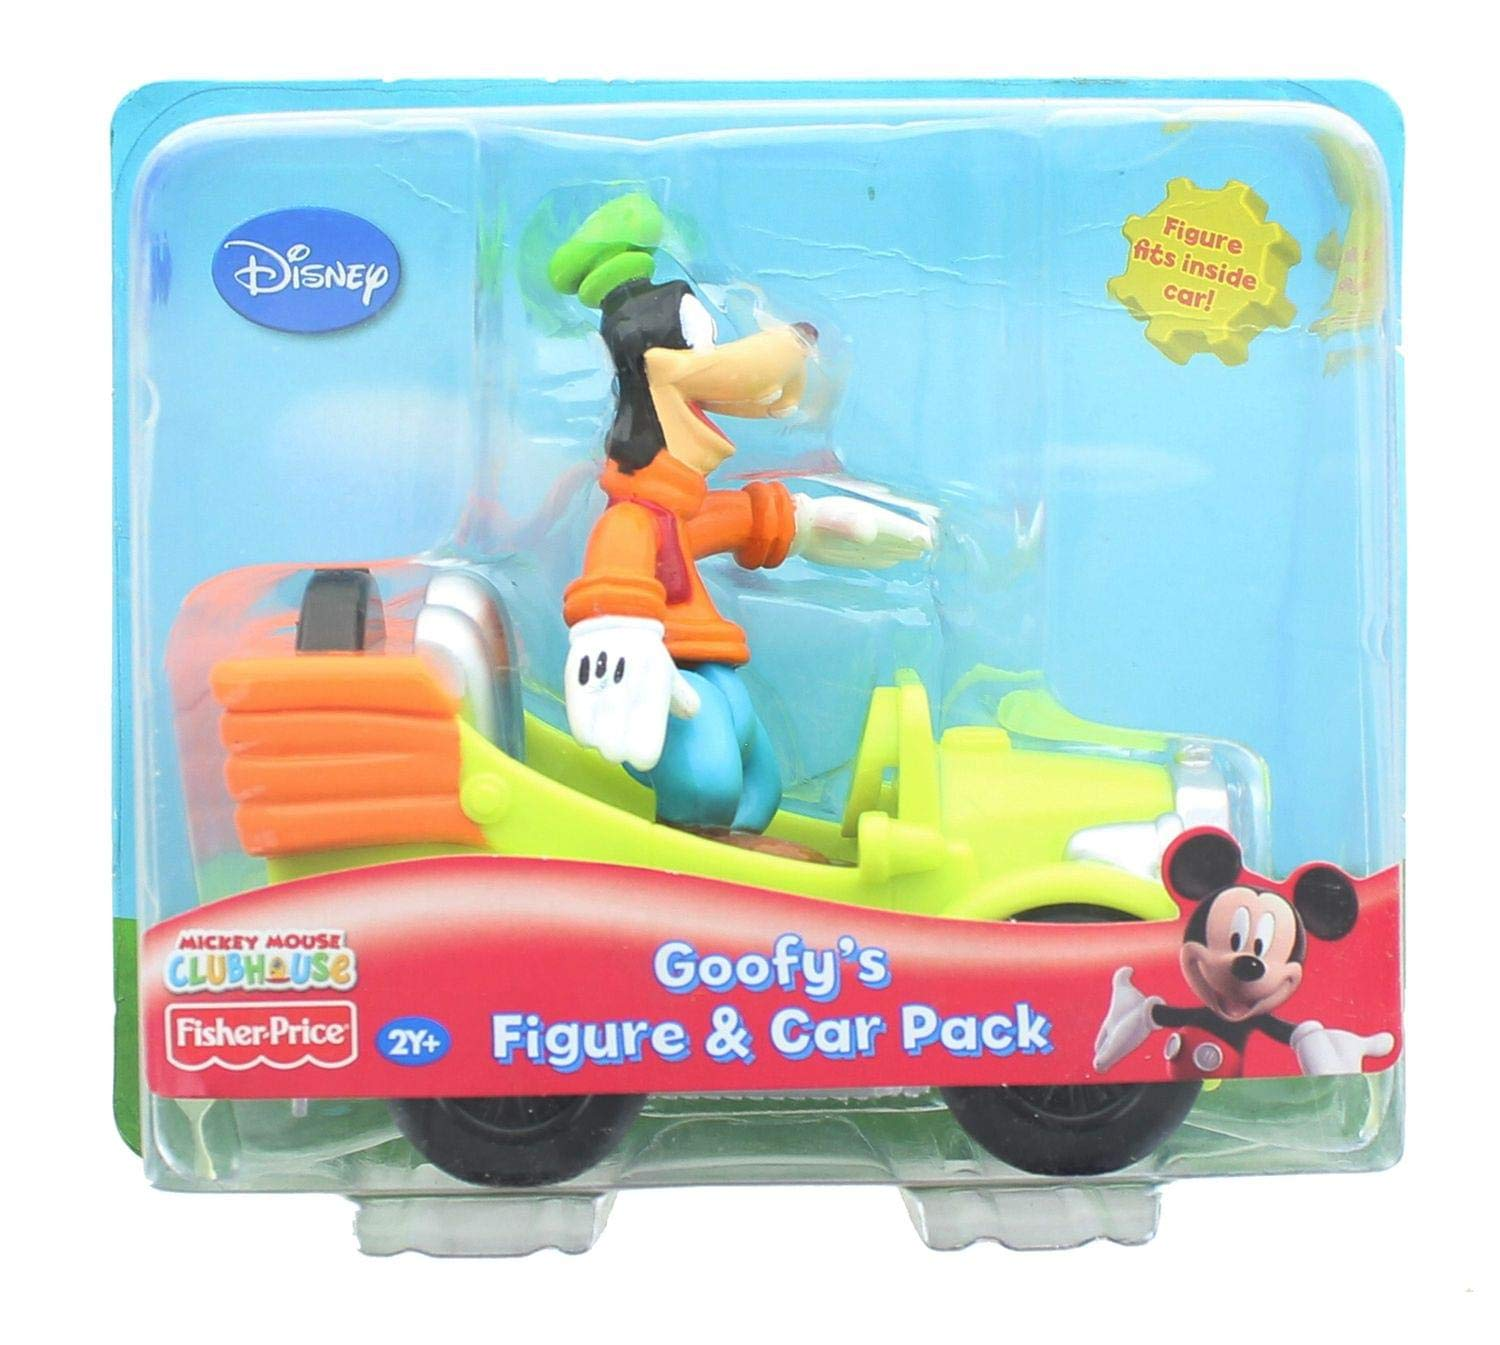 Mickey Goofy's PackJeux Mouse Figureamp; Car Clubhouse cj35ASRq4L